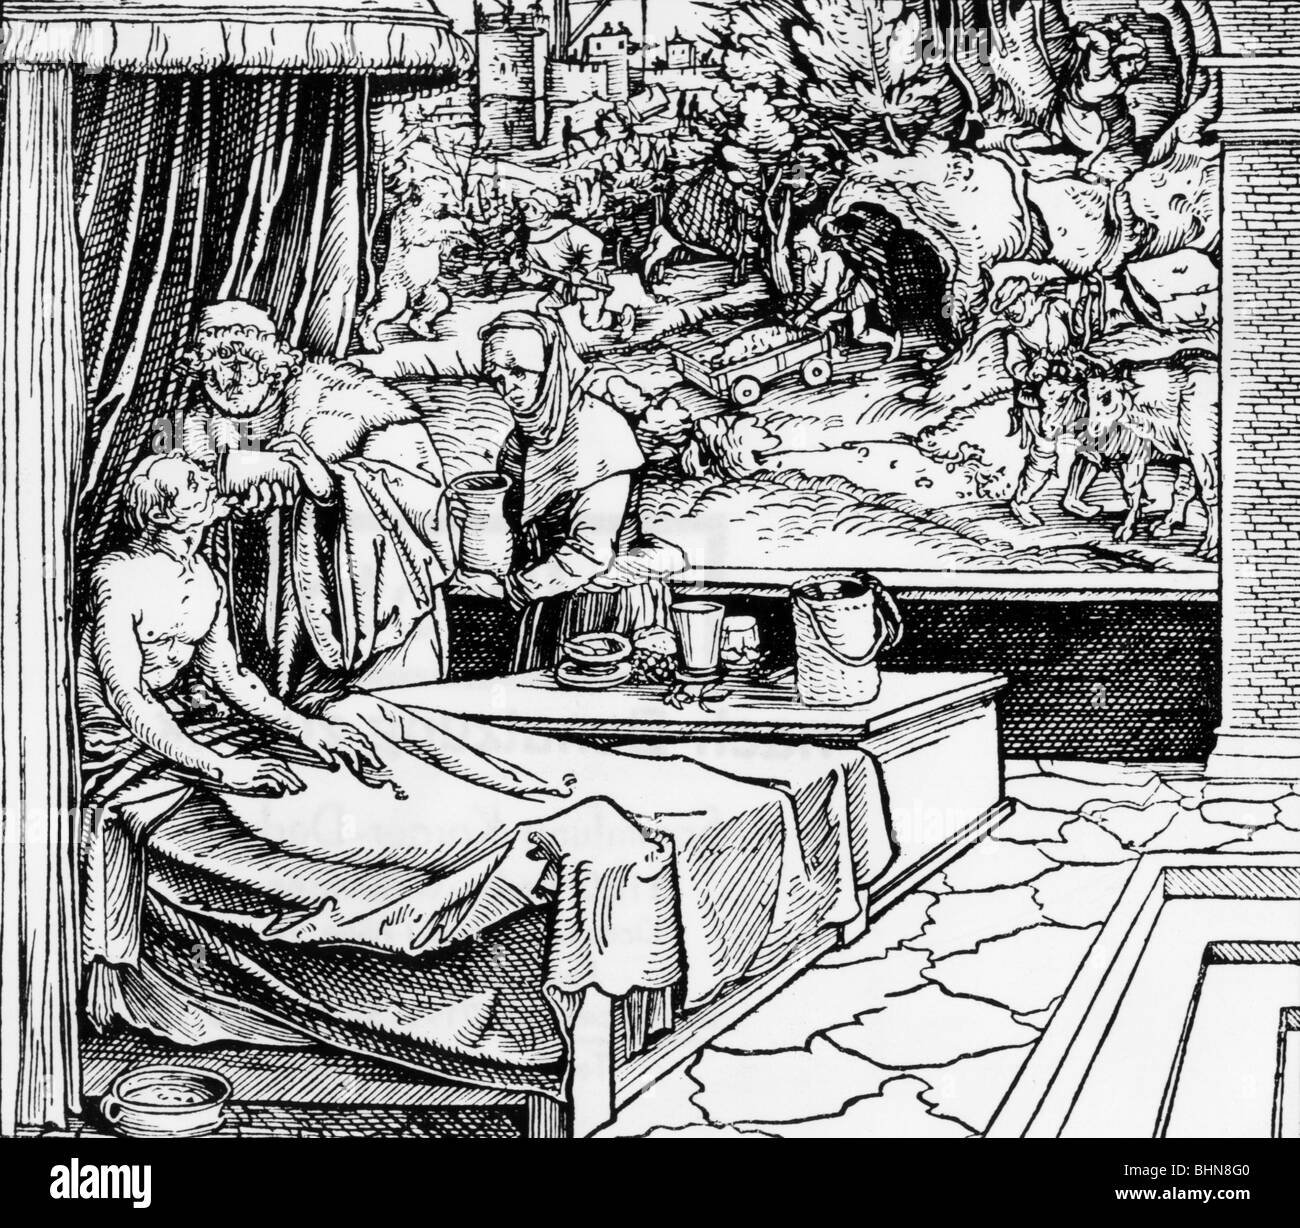 medicine, narcosis, narcotics, doctor with anaesthetic, woodcut by Cicero, 1531, Additional-Rights-Clearances-NA - Stock Image